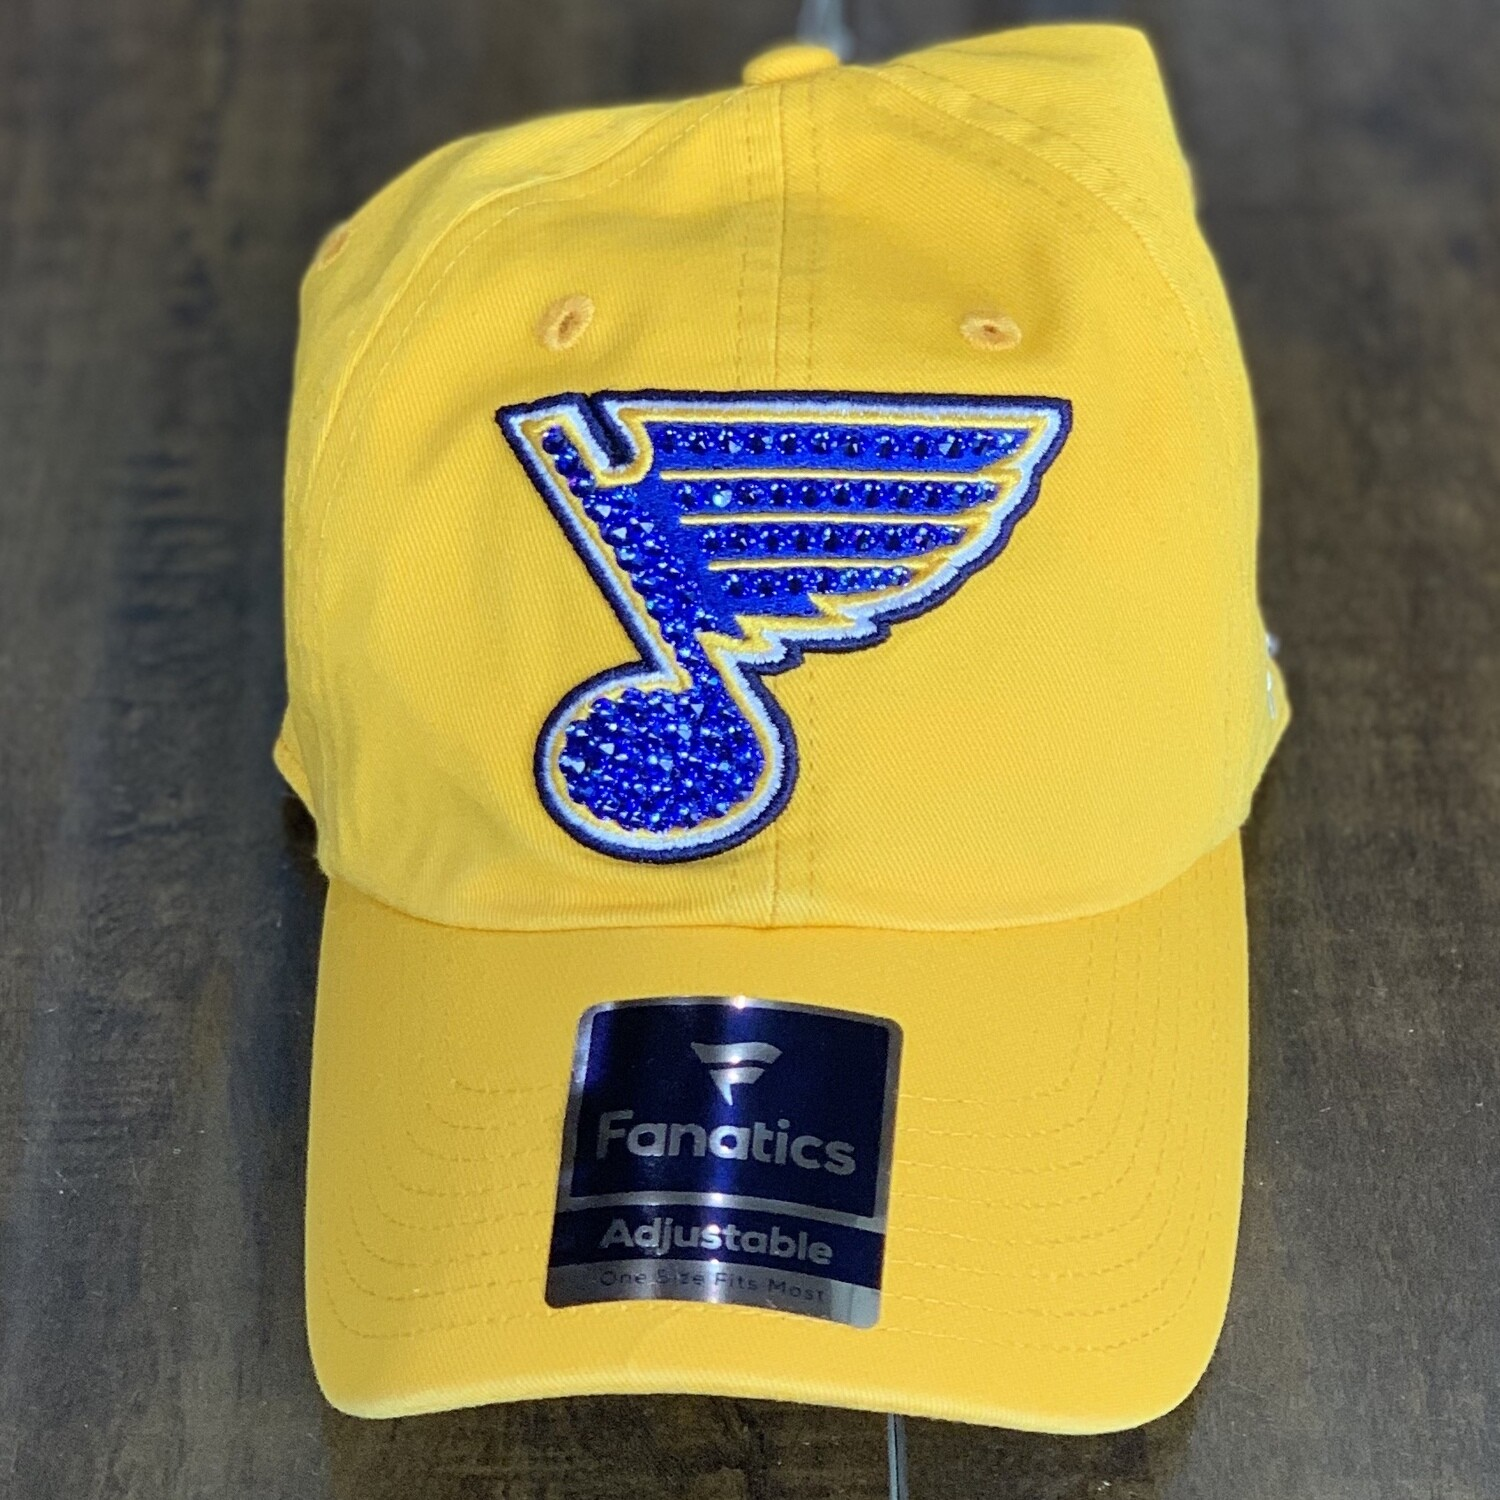 Yellow Fanatics Hat W/ Blue Crystal